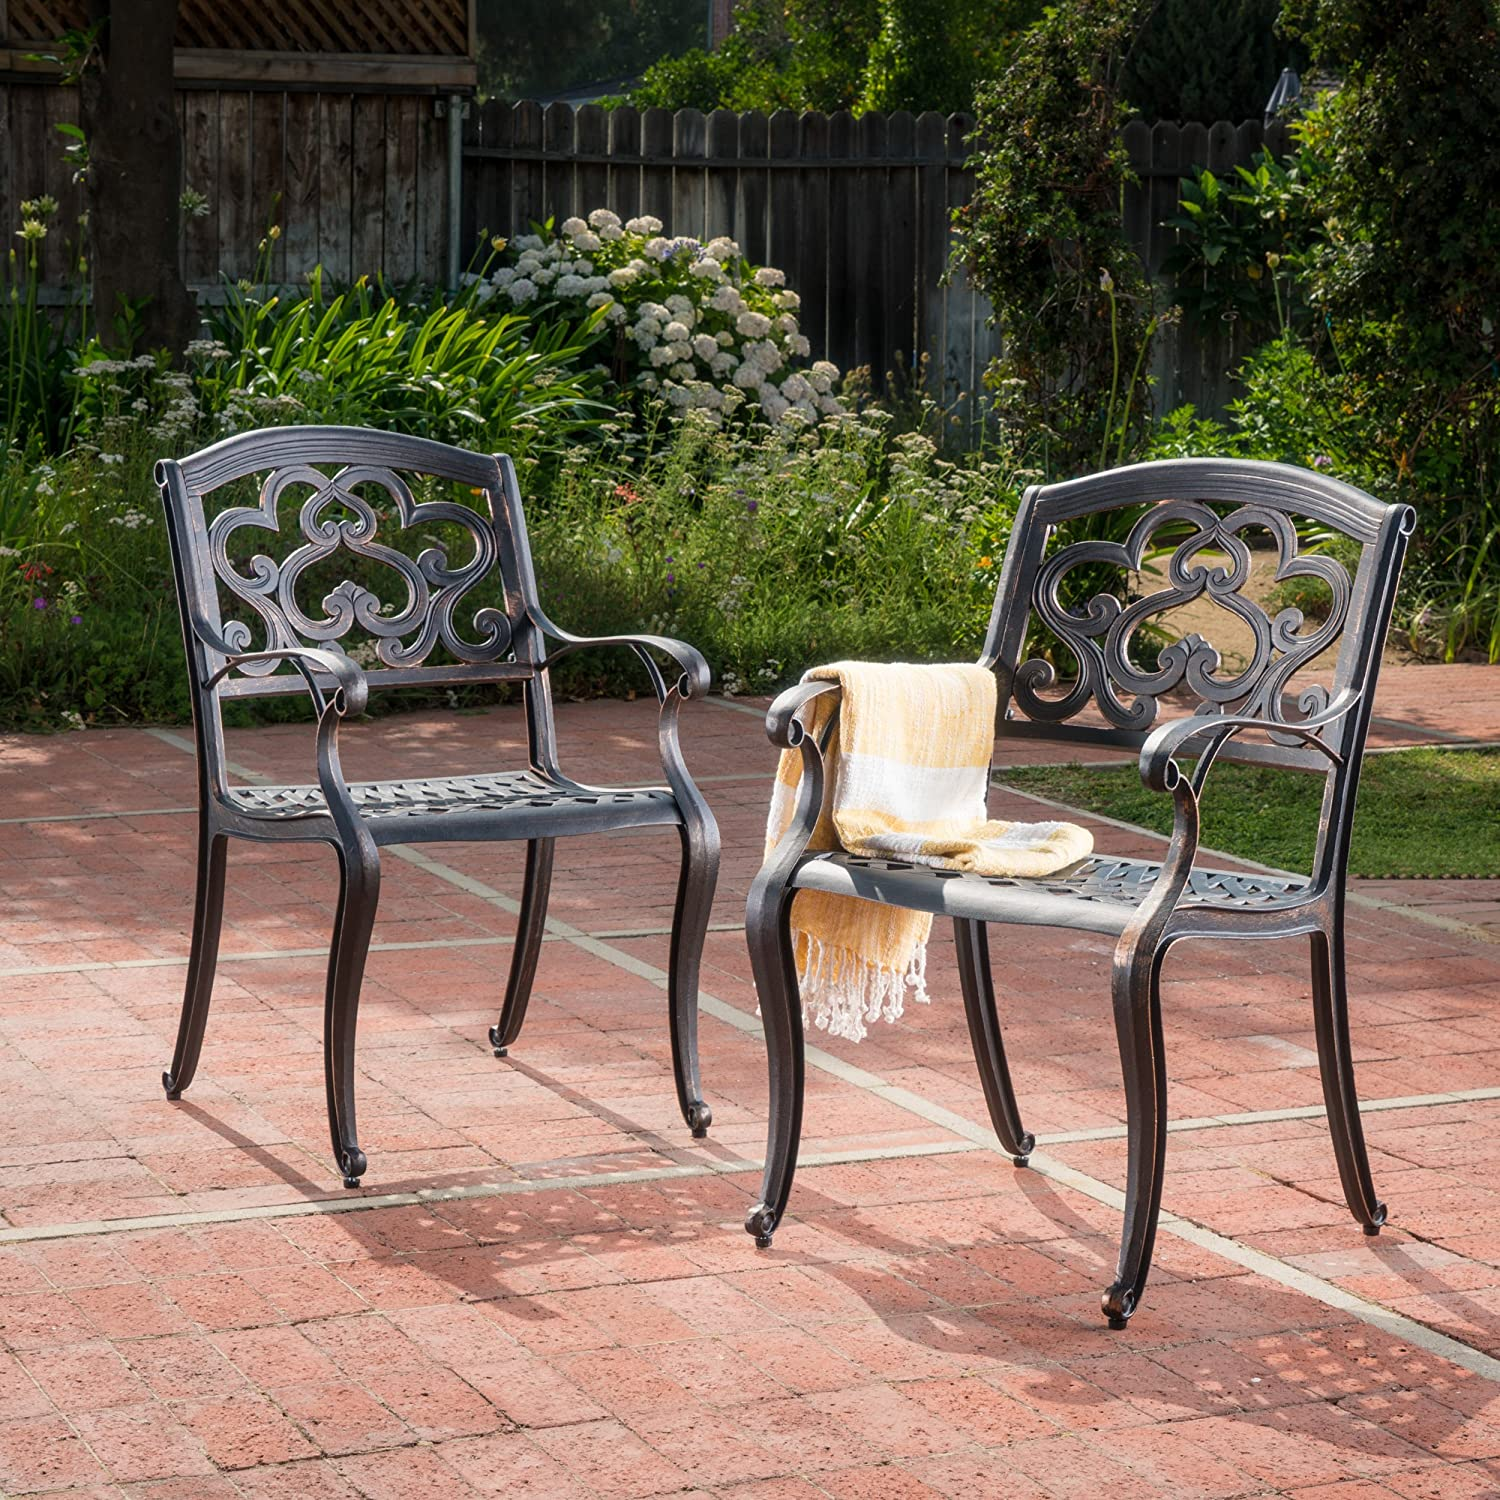 Christopher Knight Home 300680 Augusta Outdoor Cast Aluminum Dining Chairs Set of 2 , Patina Copper